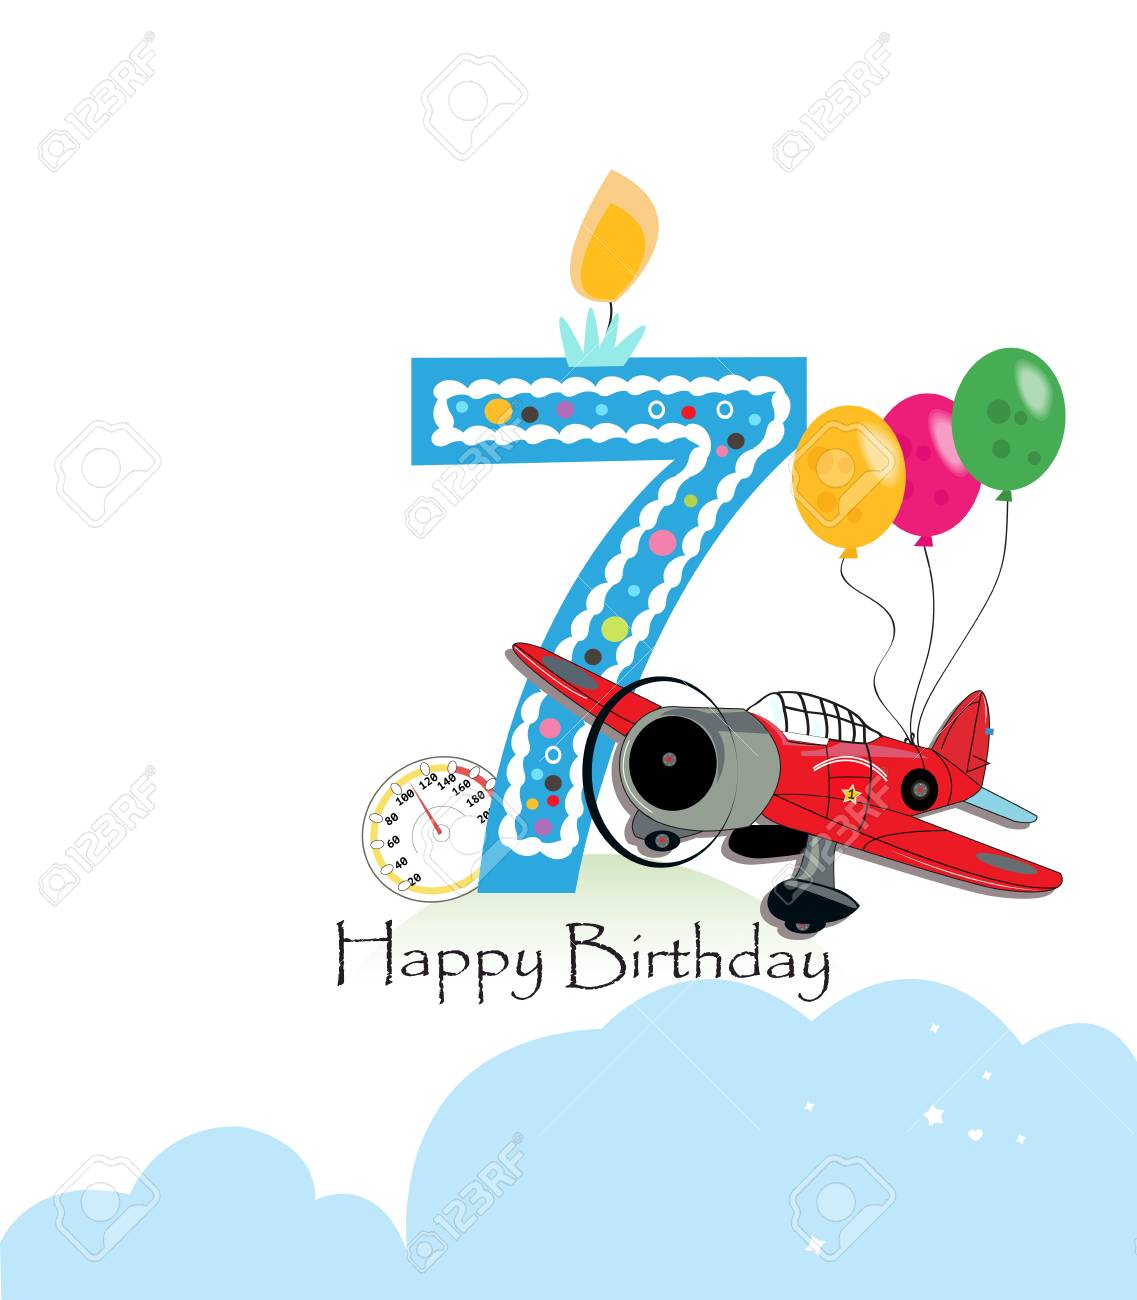 Seventh Birthday Greeting Card The Plane And Balloon Happy Birthday